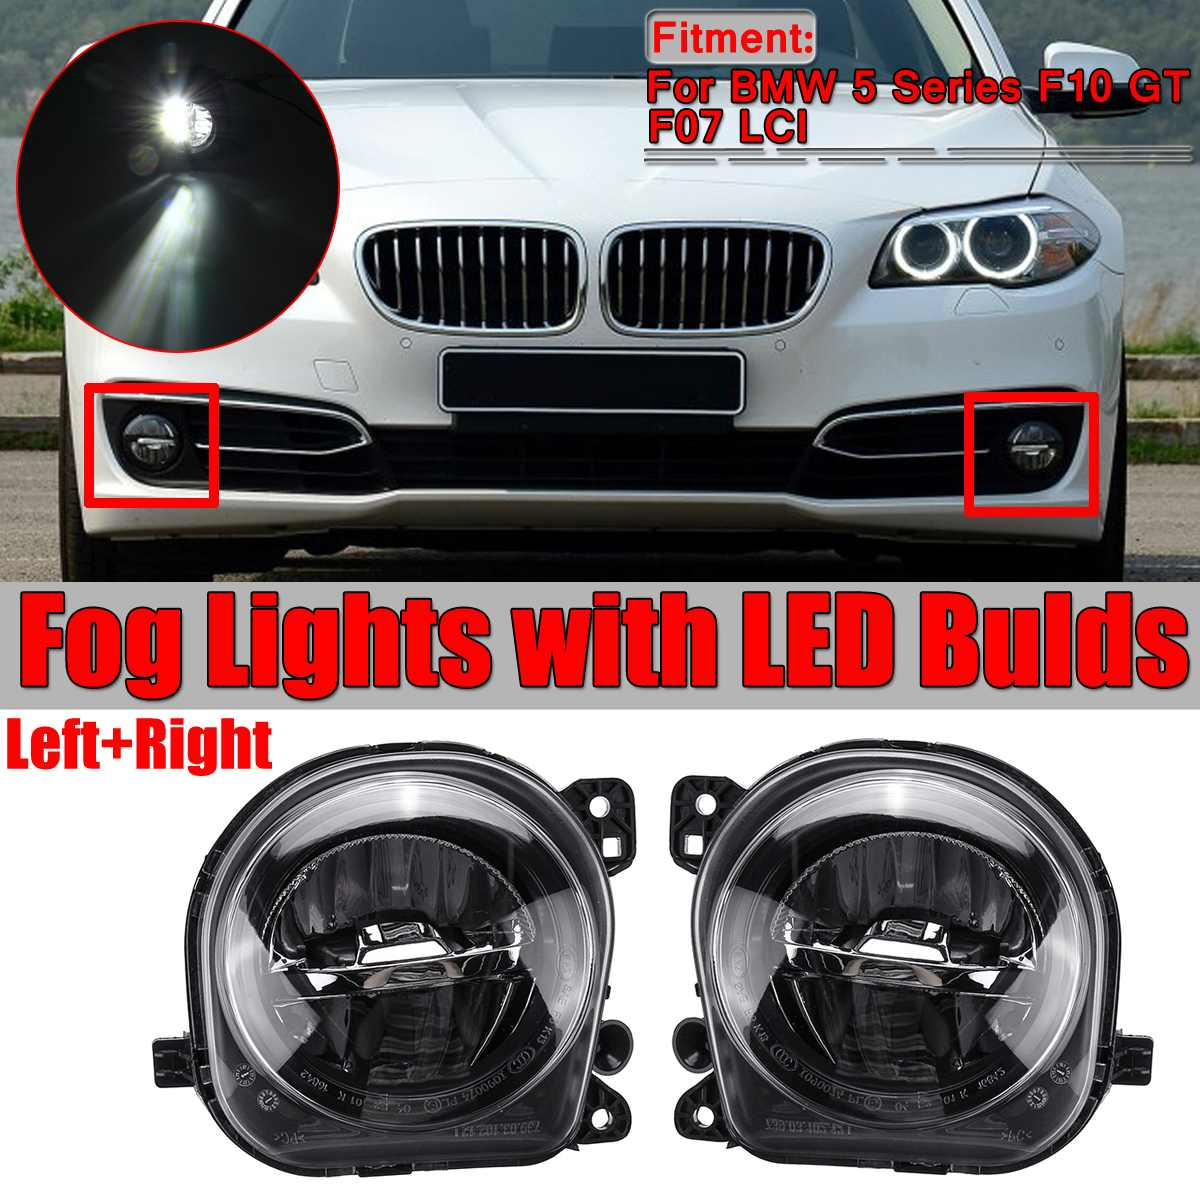 Pair LED Light Car Front Fog Light Lamp LED With LED Bulds For BMW 5 Series F07 F10 GT F11 F18 LCI 535i 528i 550i 2013 2014 2015